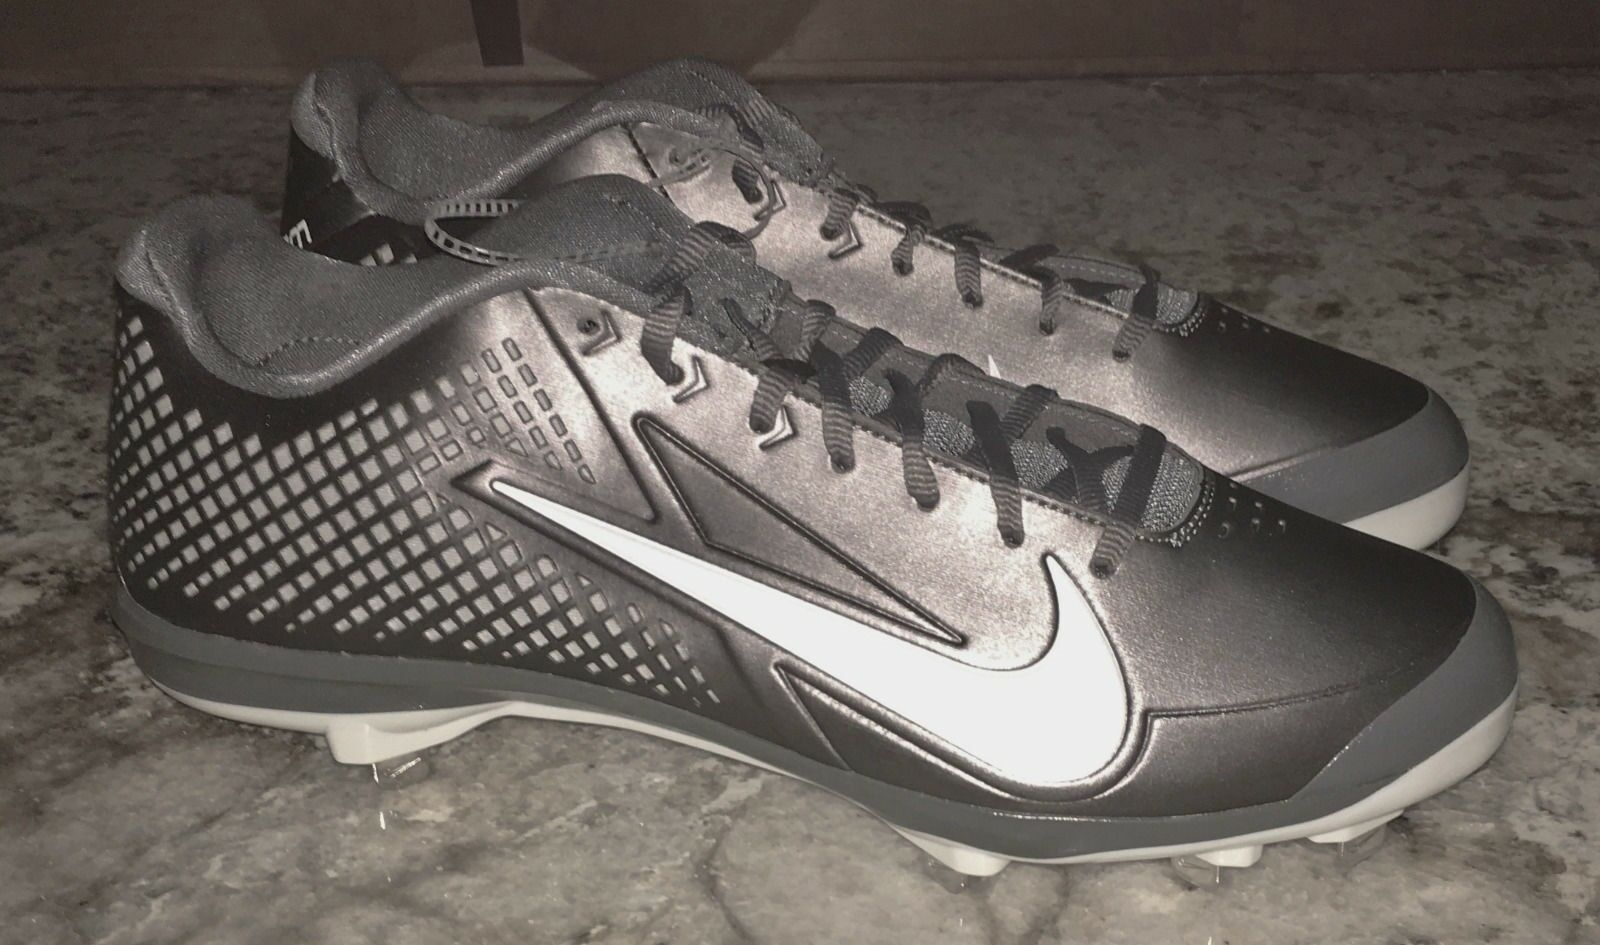 NIKE Zoom Vapor Elite Graphite Grey Whi Baseball Metal Spikes Cleats NEW Mens 13